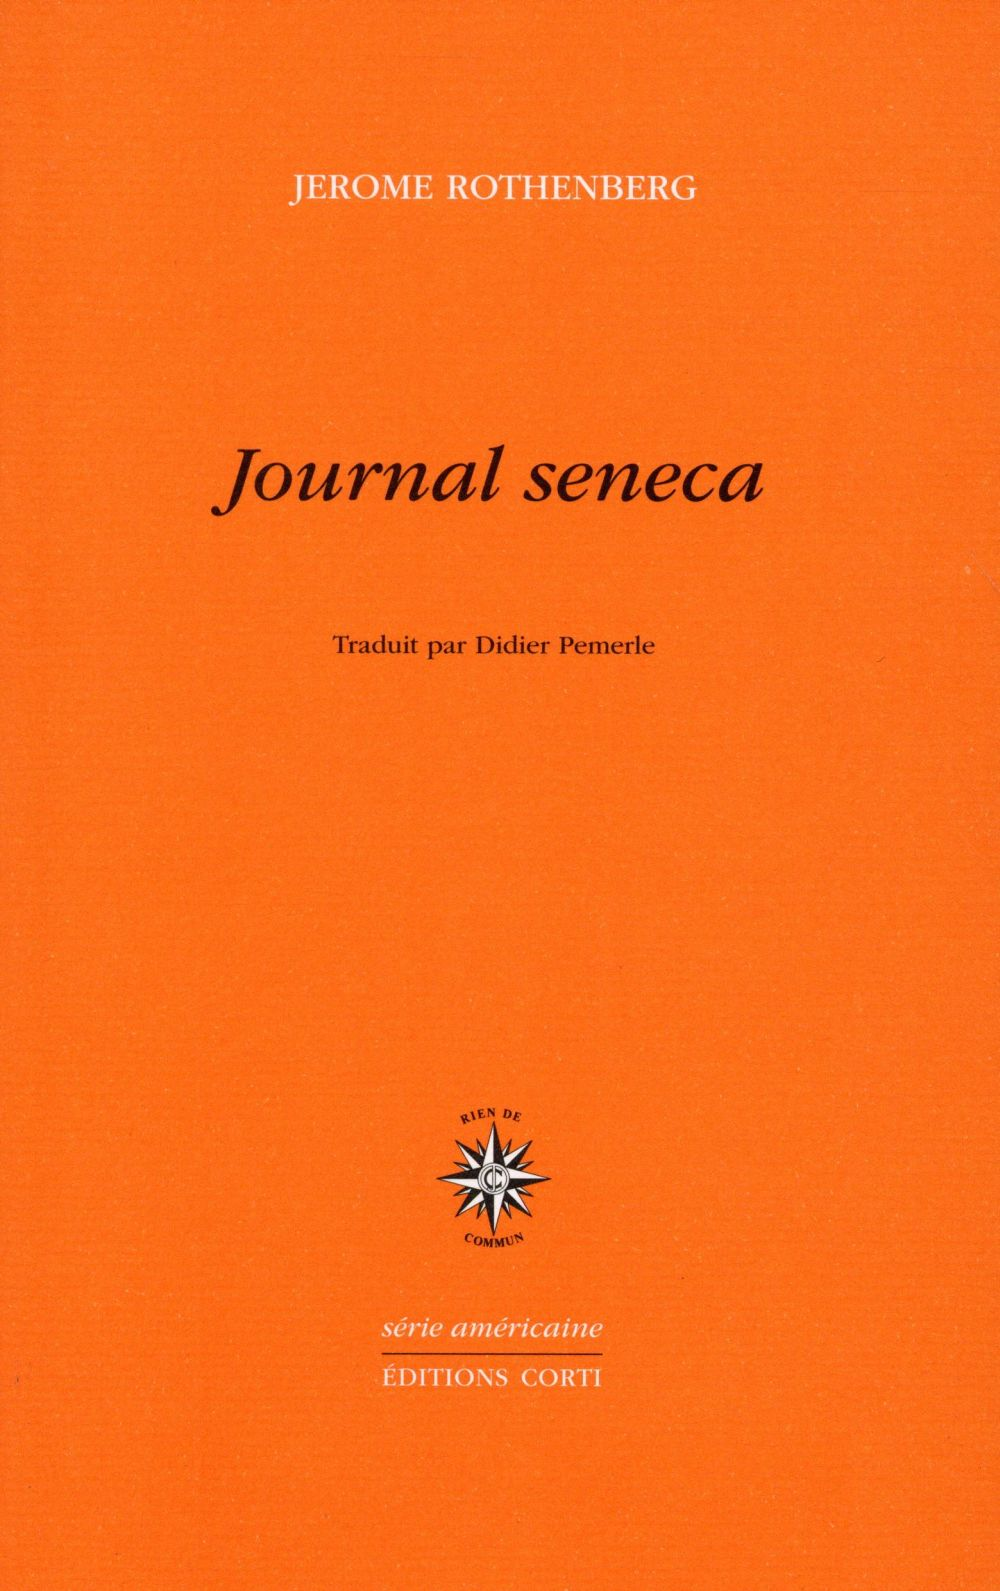 Journal seneca